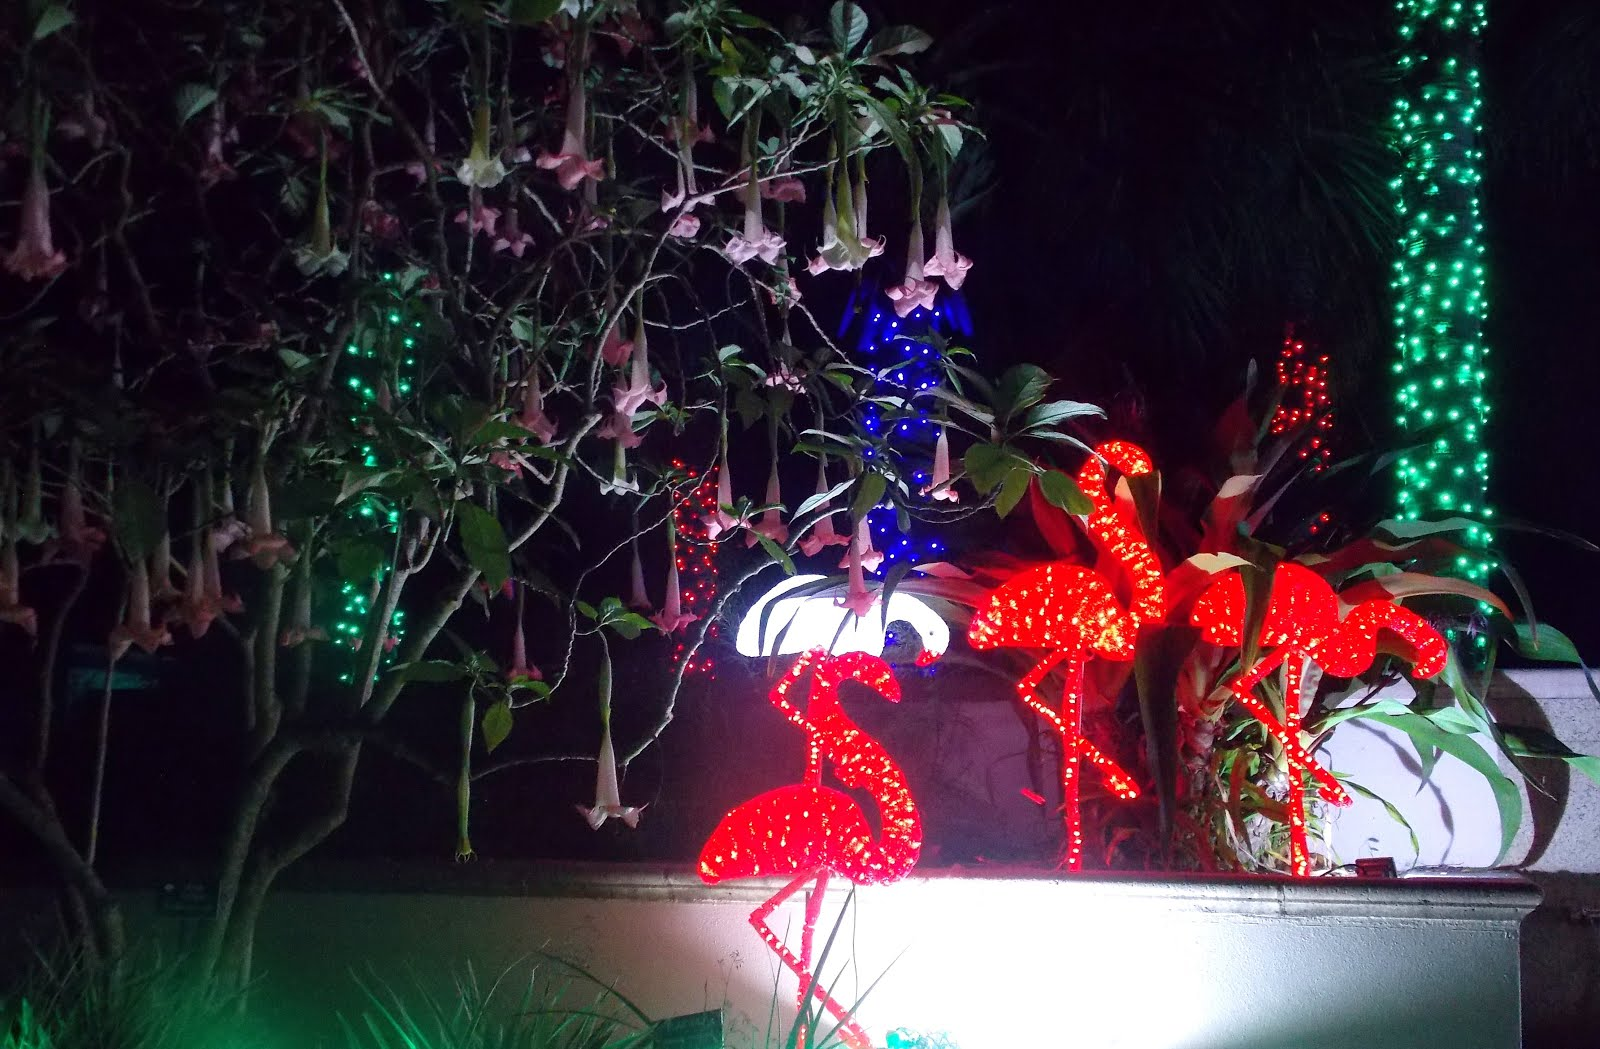 The schramm journey christmas events in pinellas county - Largo botanical gardens christmas lights ...